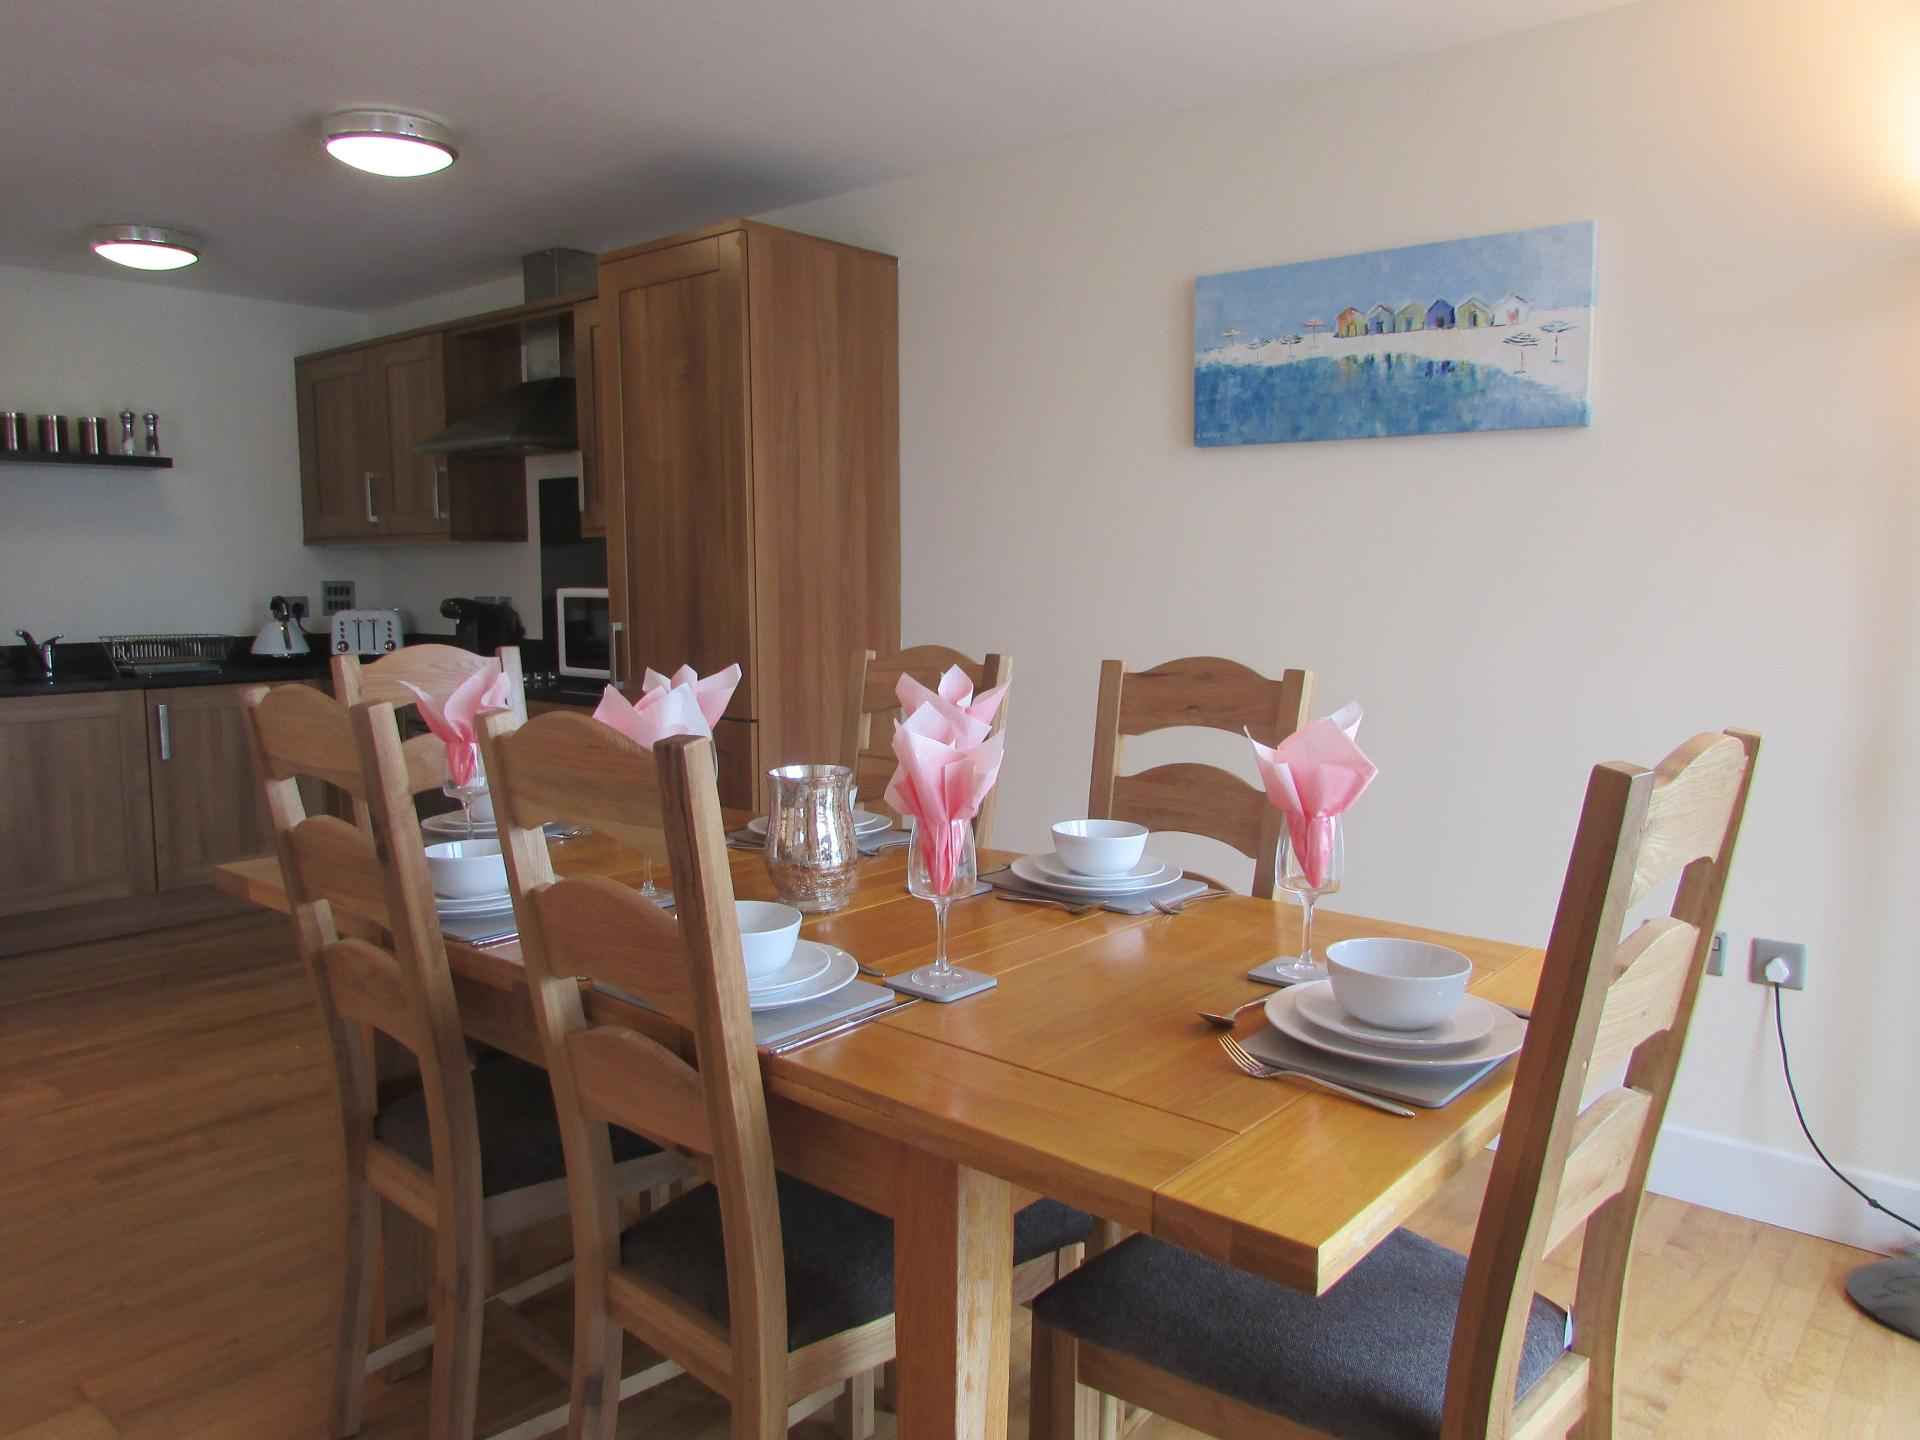 Dining Area at William Yard Apartment, Millbay, Plymouth